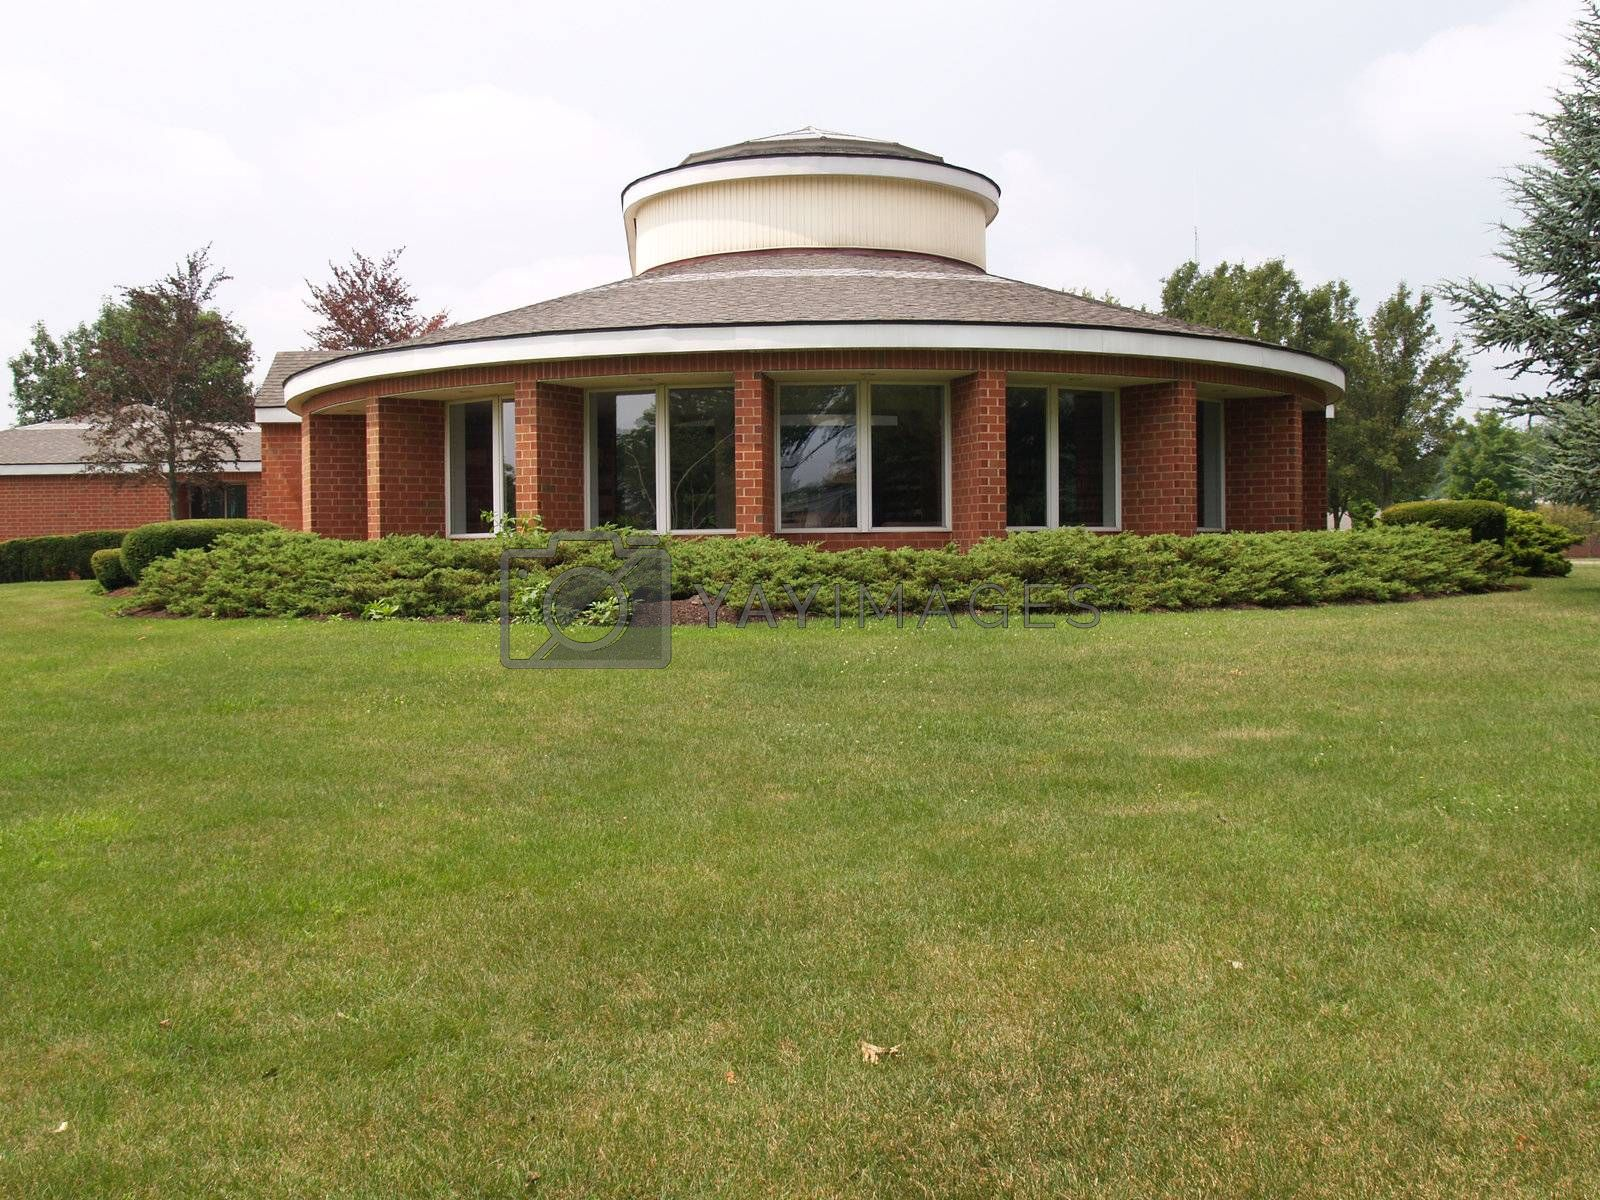 modern round brick building with many windows and green lawn